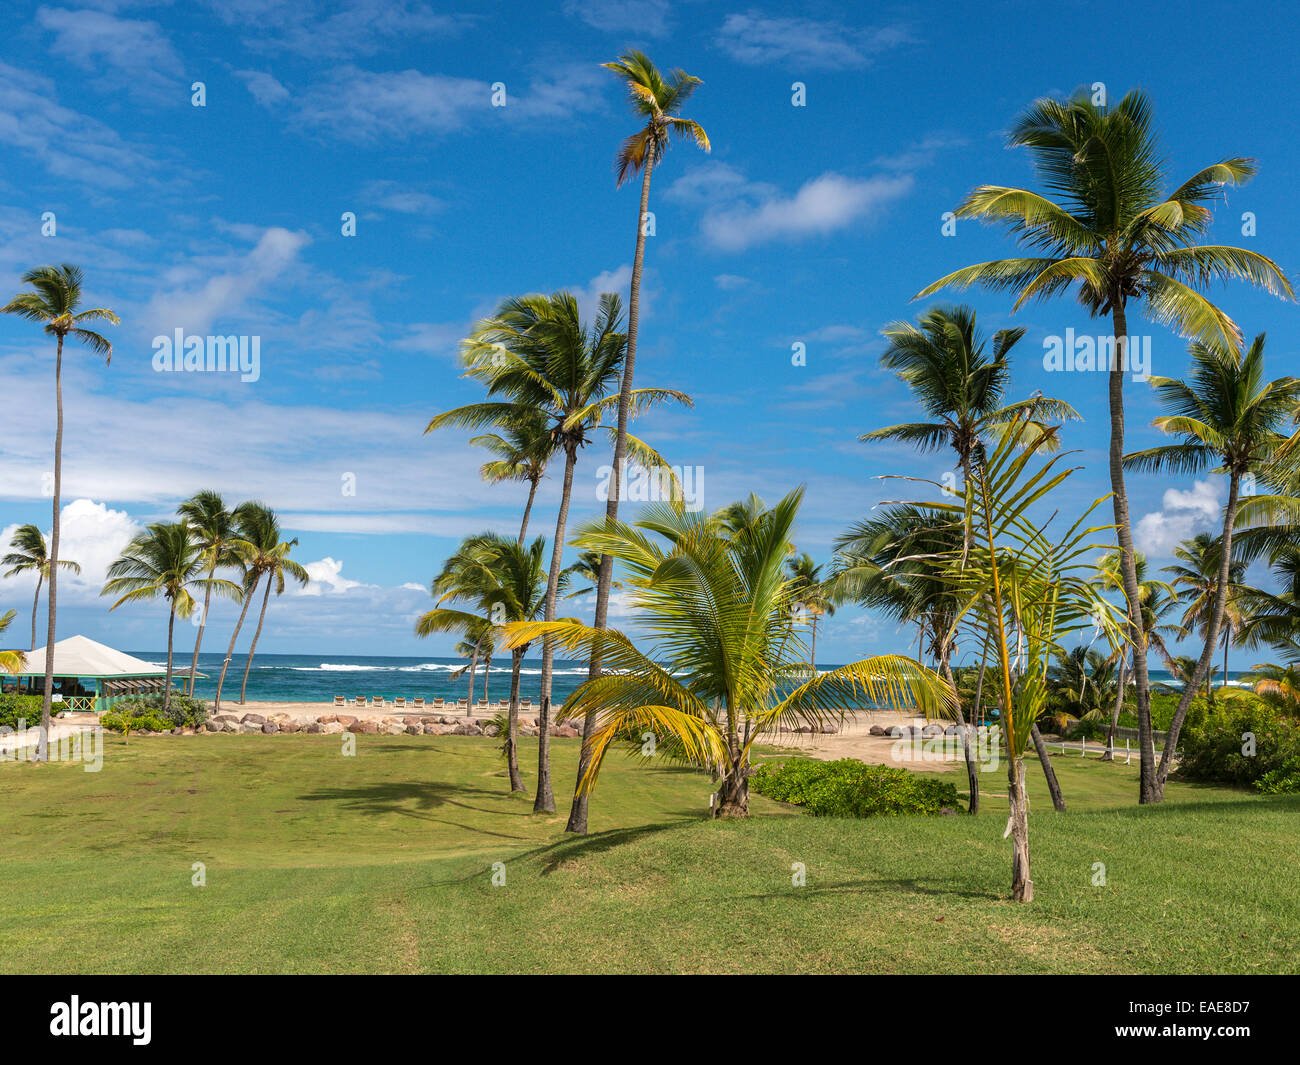 Landscape depicting Long Haul Beach, Nevis. Palm tree groups in foreground with beach, Caribbean sea and blue sky - Stock Image